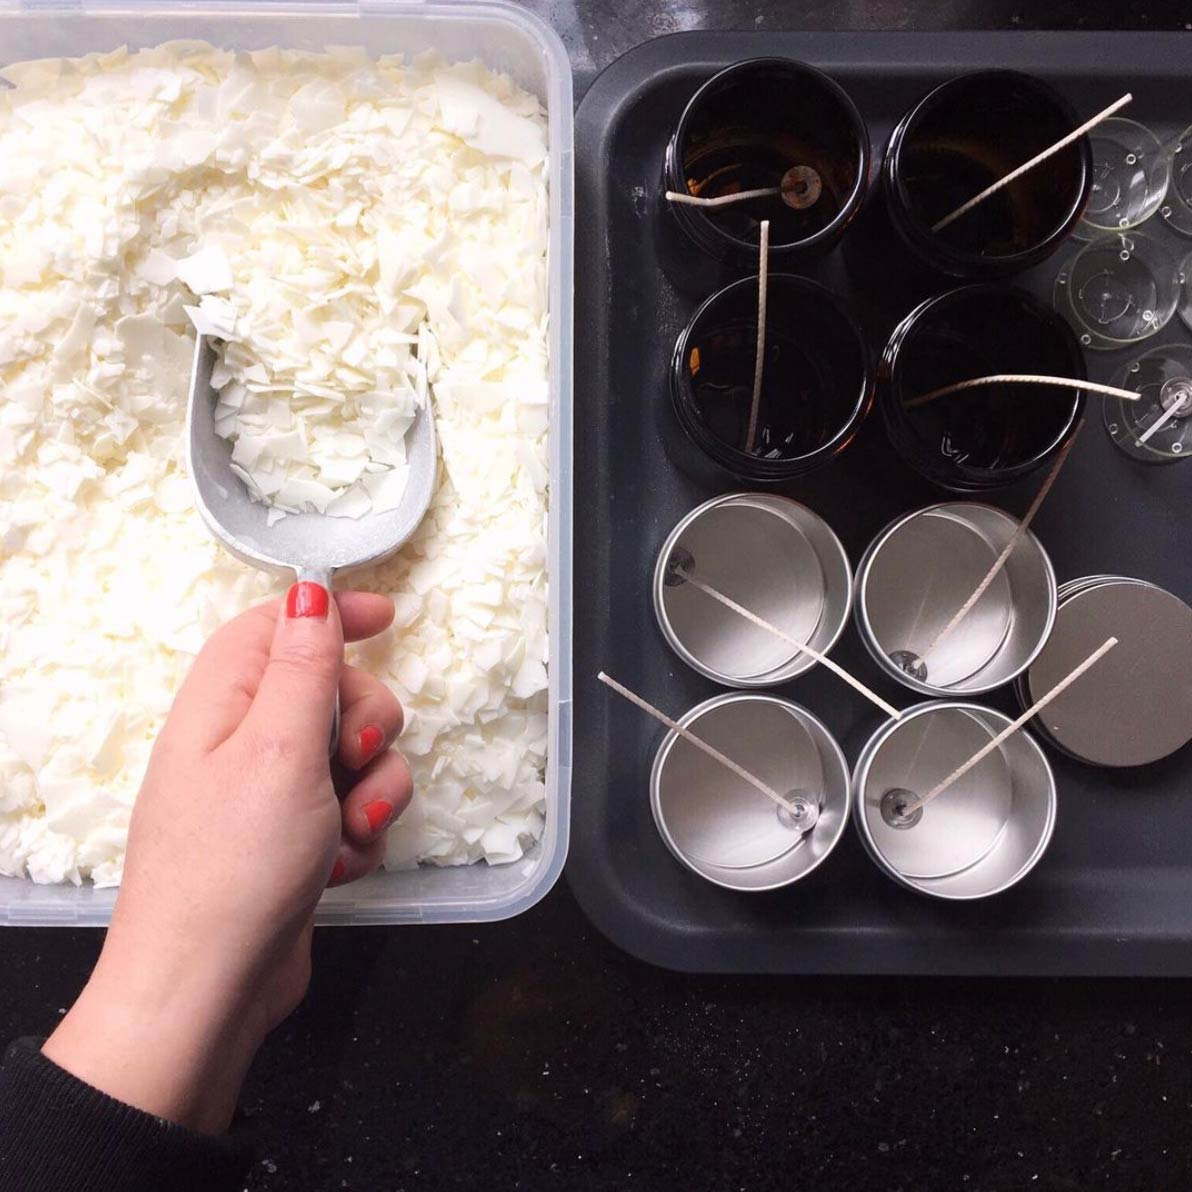 a woman's hand scooping soy flakes to melt